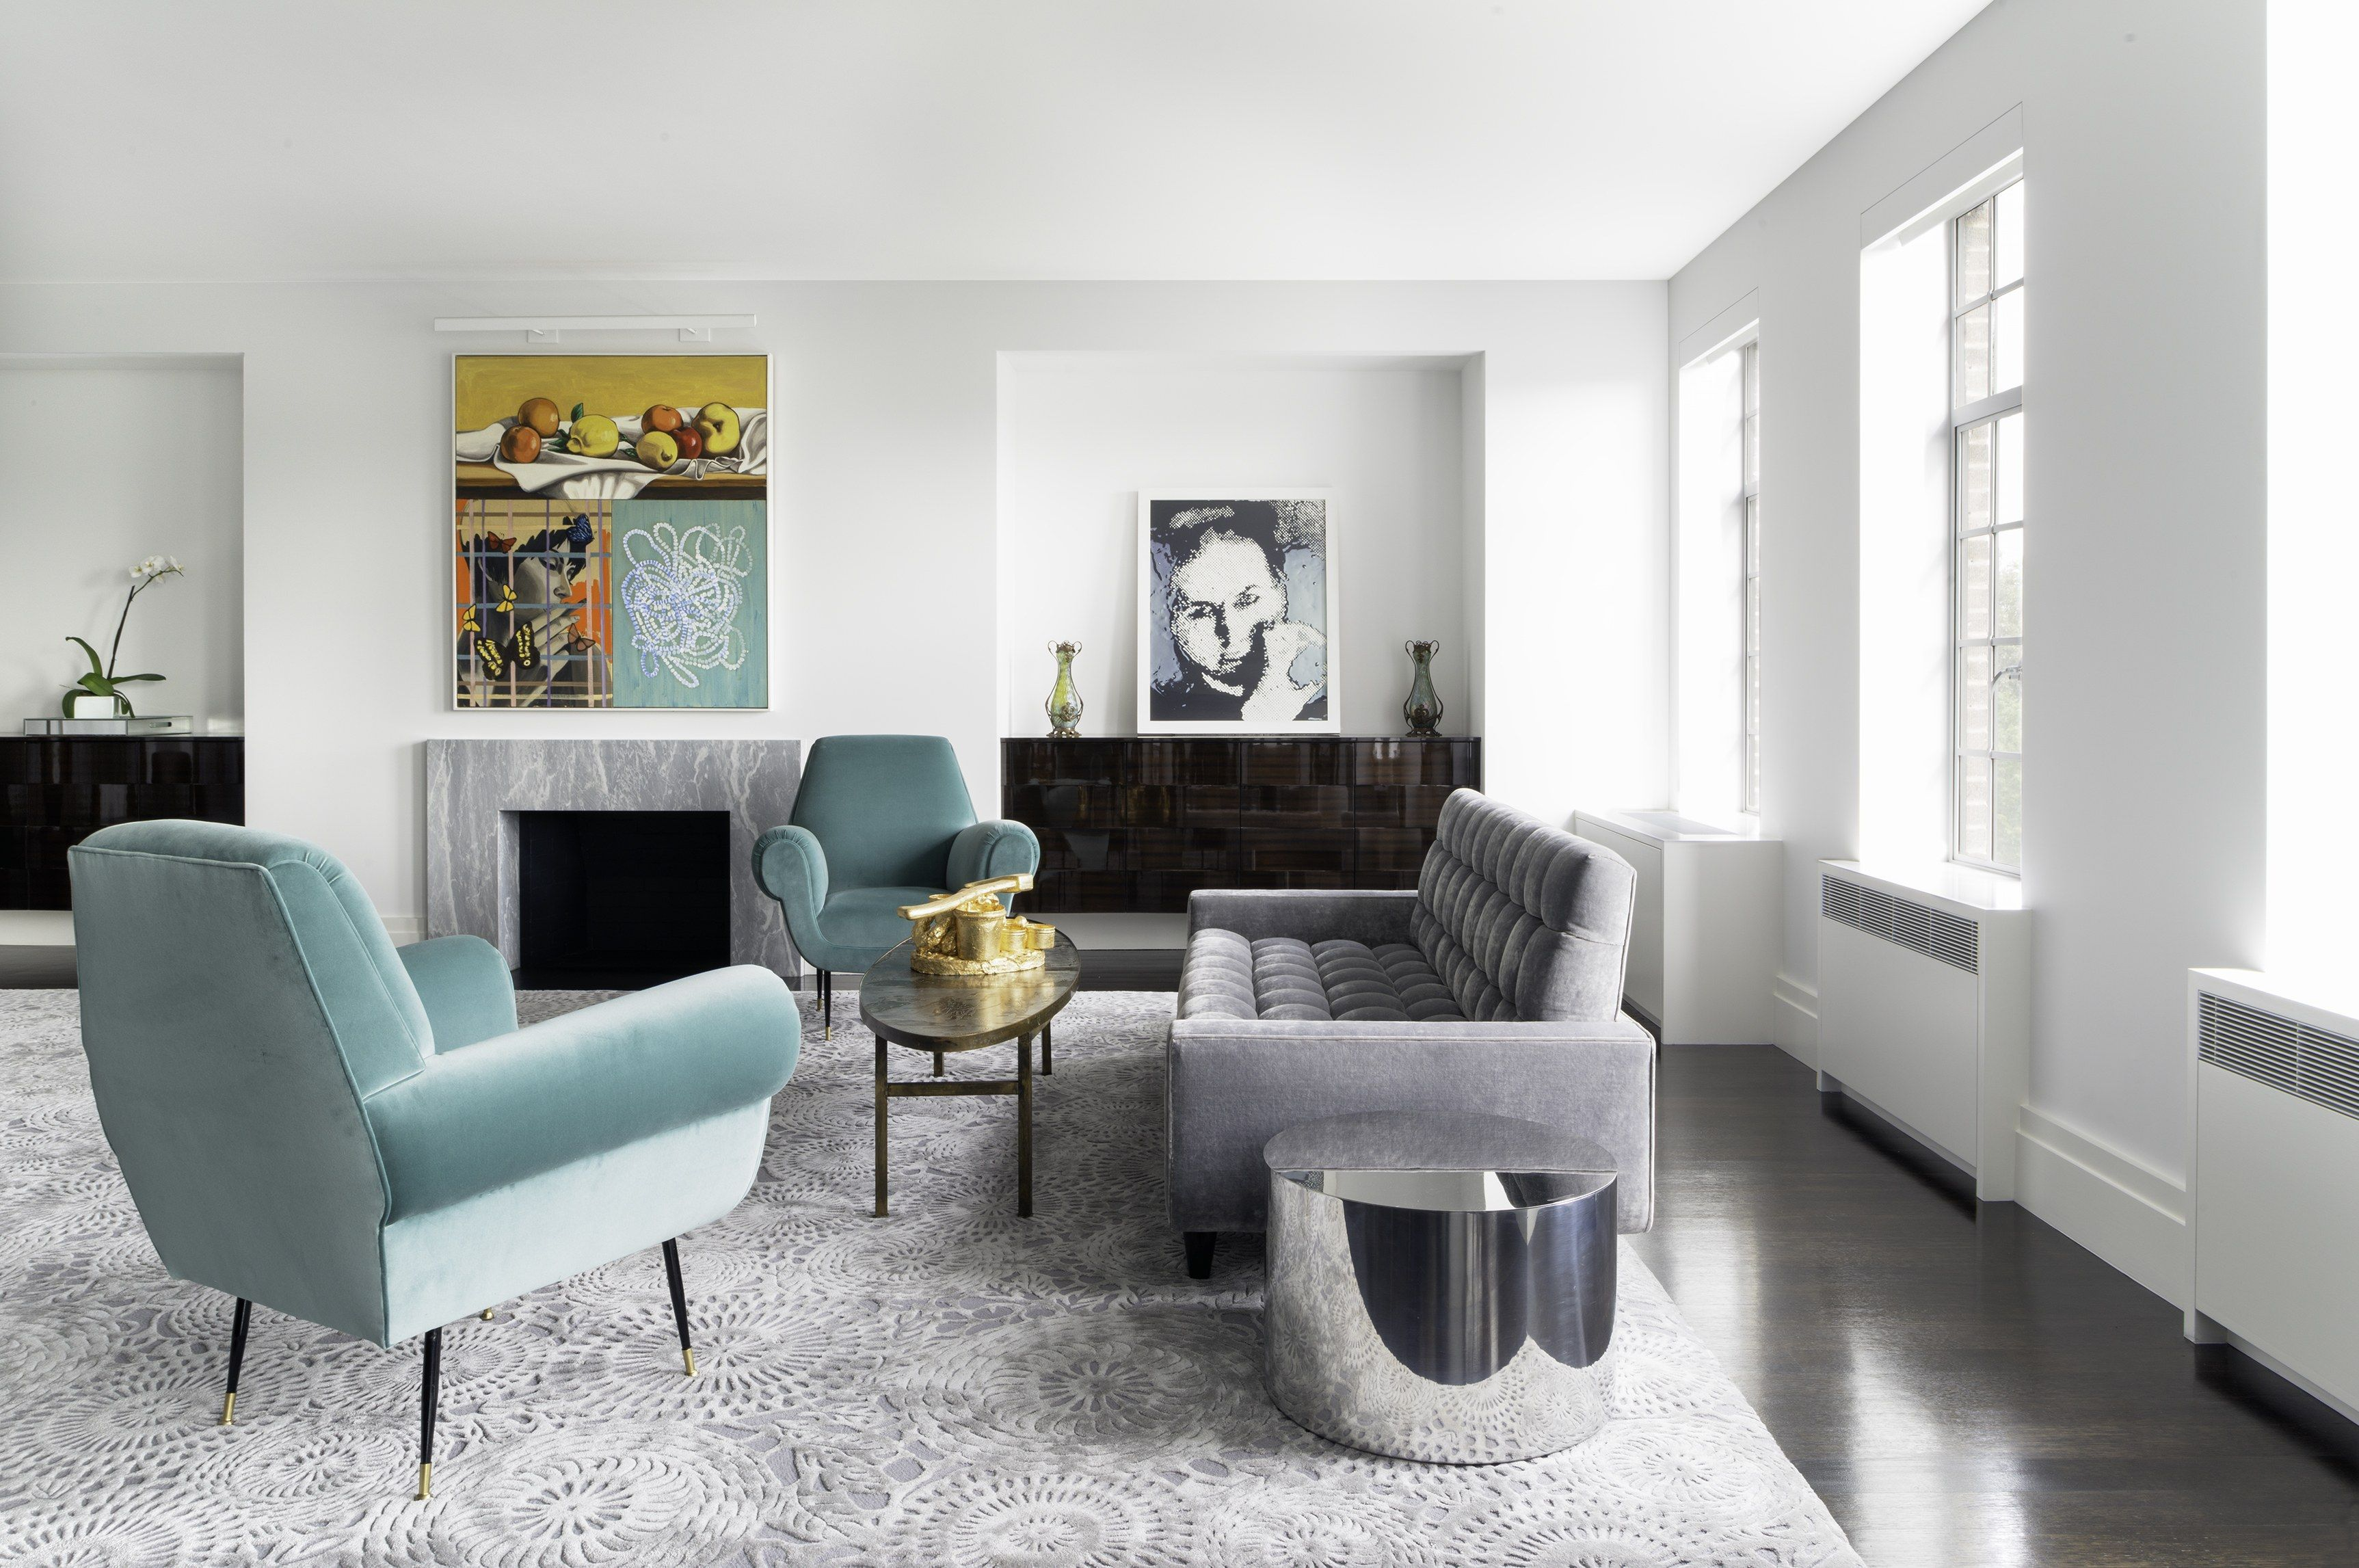 Modern blue and grey living room living room design ideas 5 modern homes by new york architecture firm deborah berke partners photos architectural